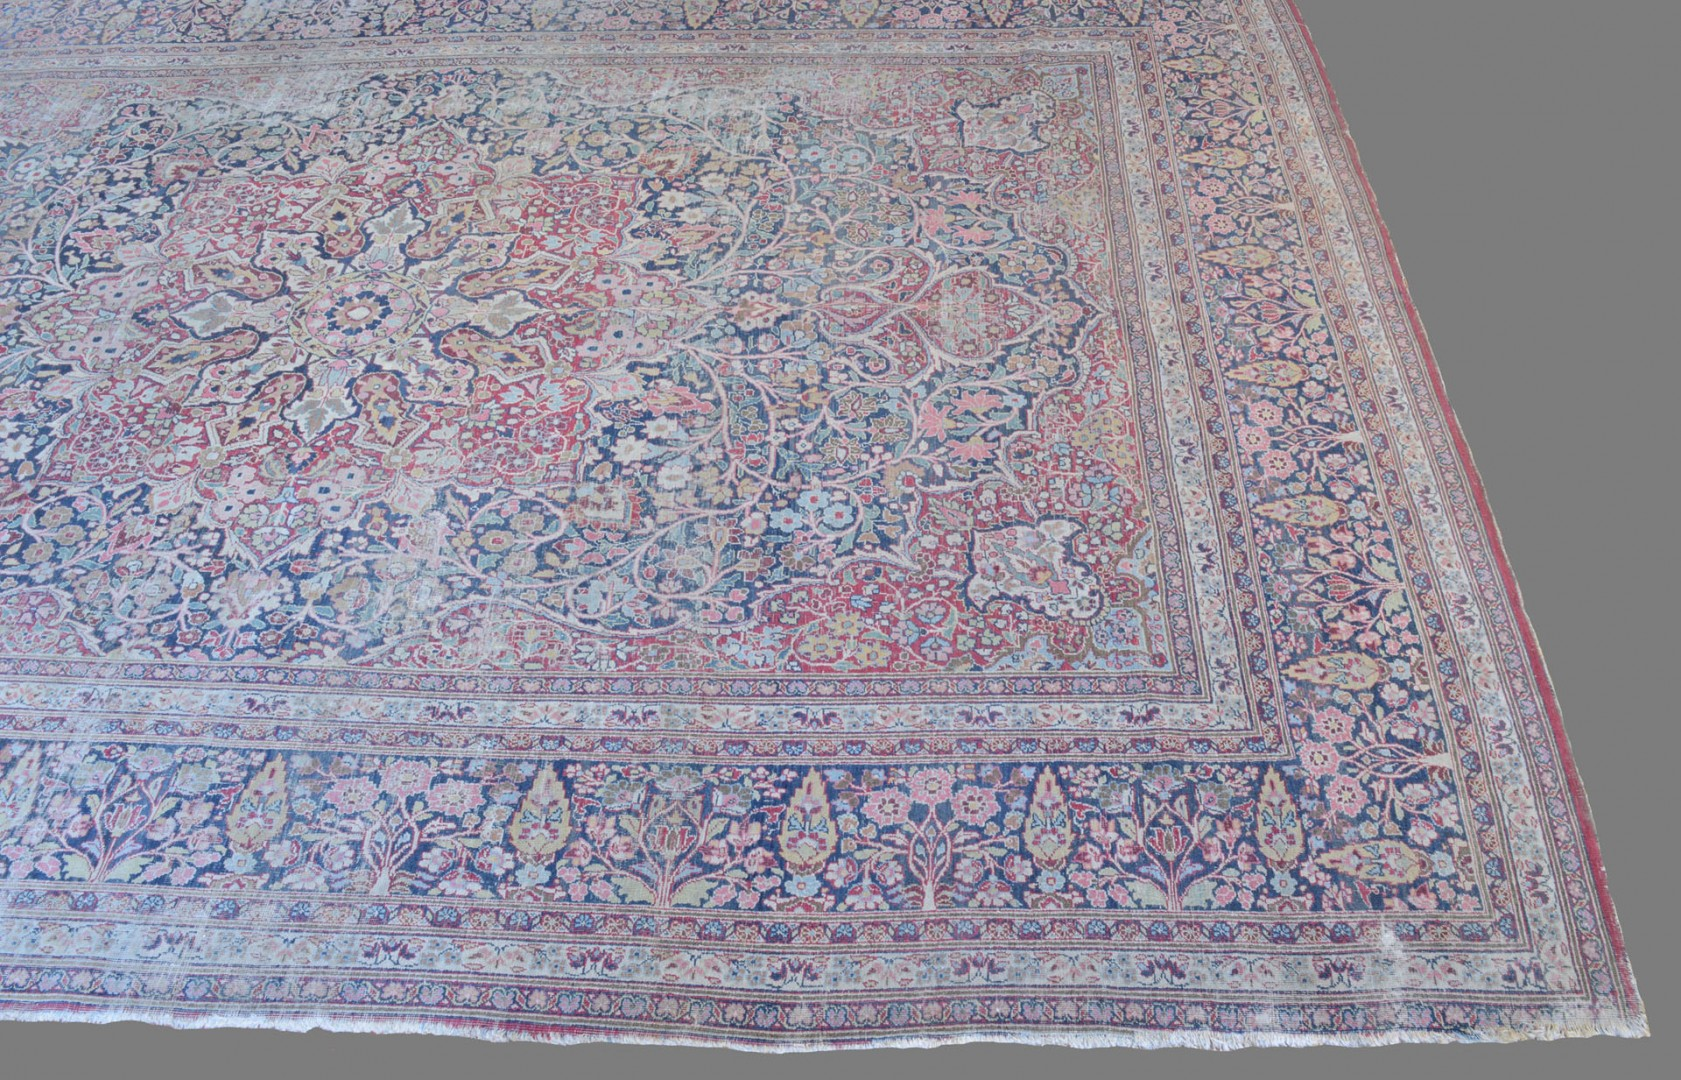 "Antique Lavar Kerman Carpet, 14'6"" x 10'"